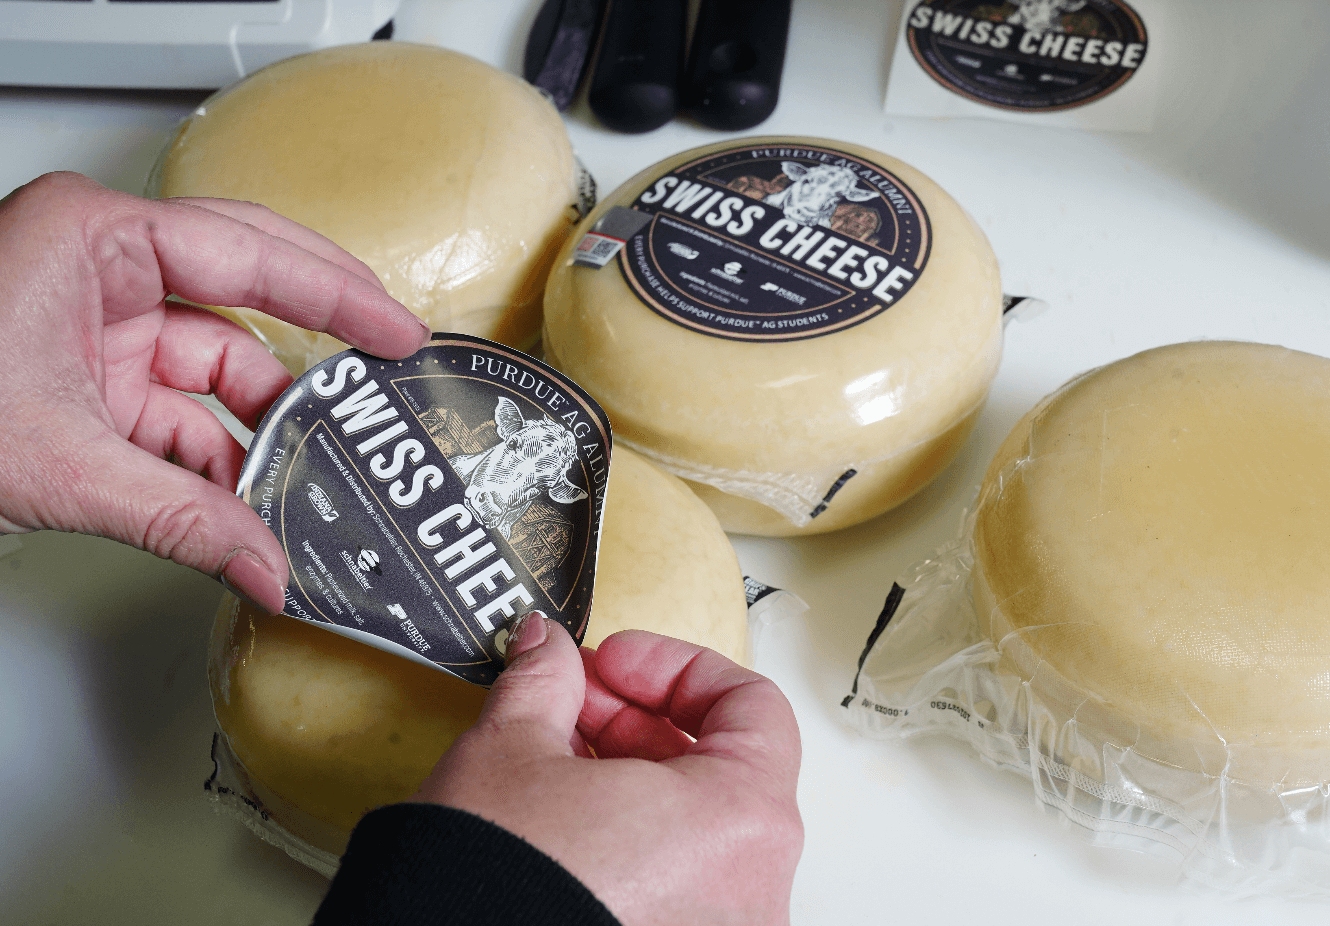 Putting on cheese label